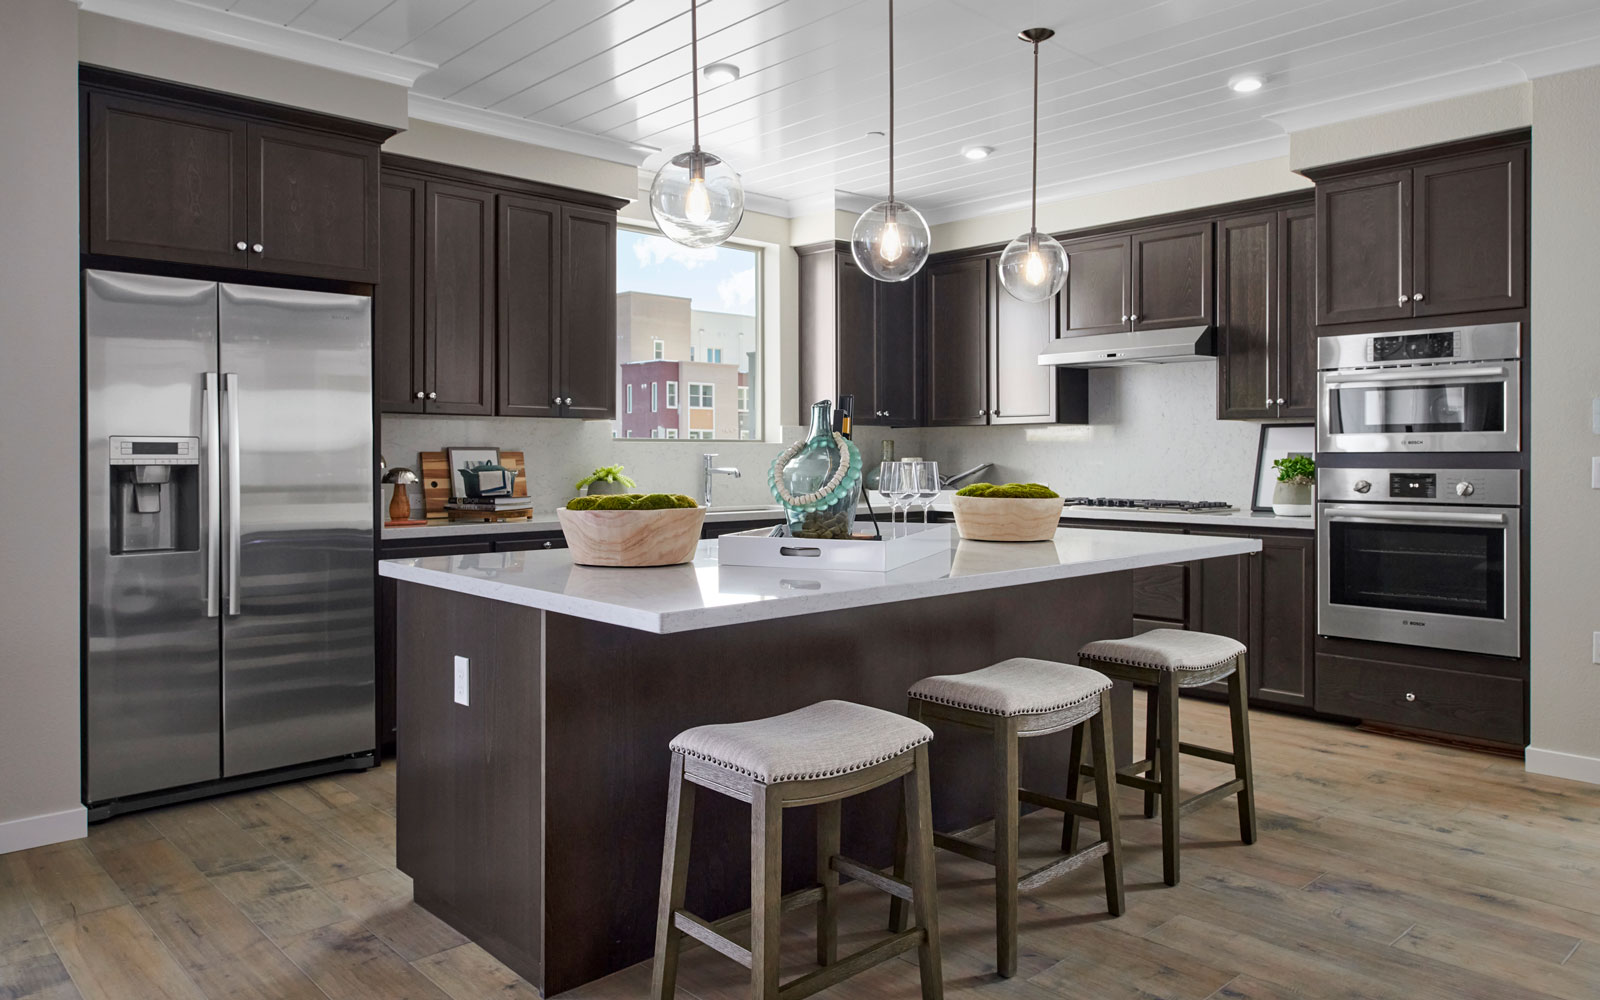 Kitchen   Residence 1   Hyde Park at Boulevard in Dublin, CA   Brookfield Residential